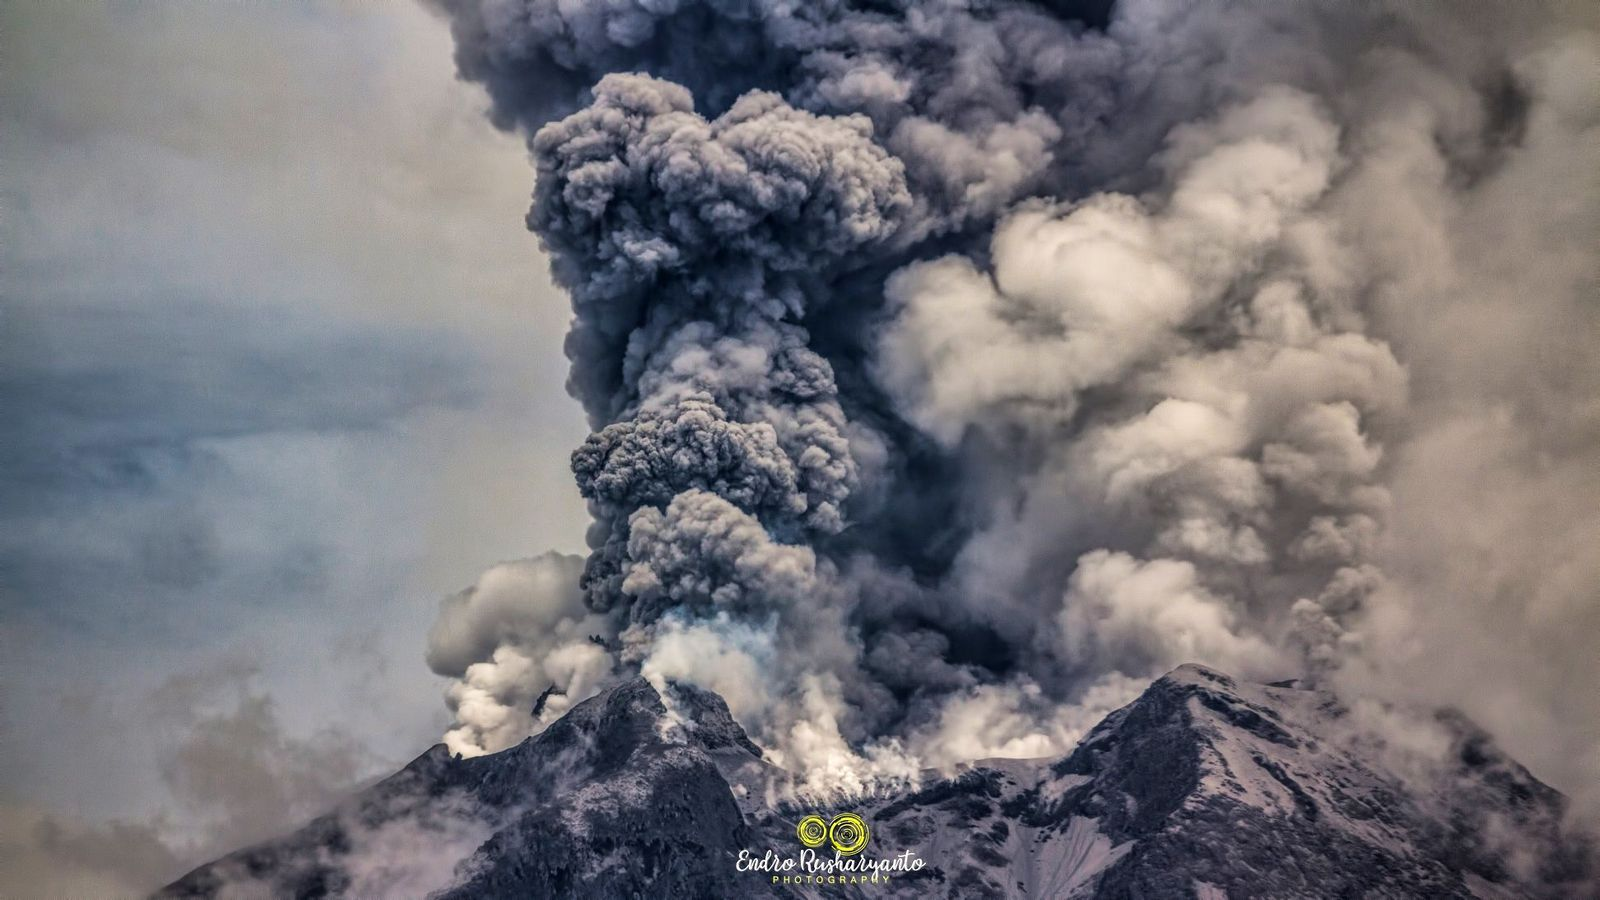 Sinabung - steam jets, two-tone plumes of steam & gas and ash -19.08.2020 / 11:03 WIB - photo Endro Rusharyanto